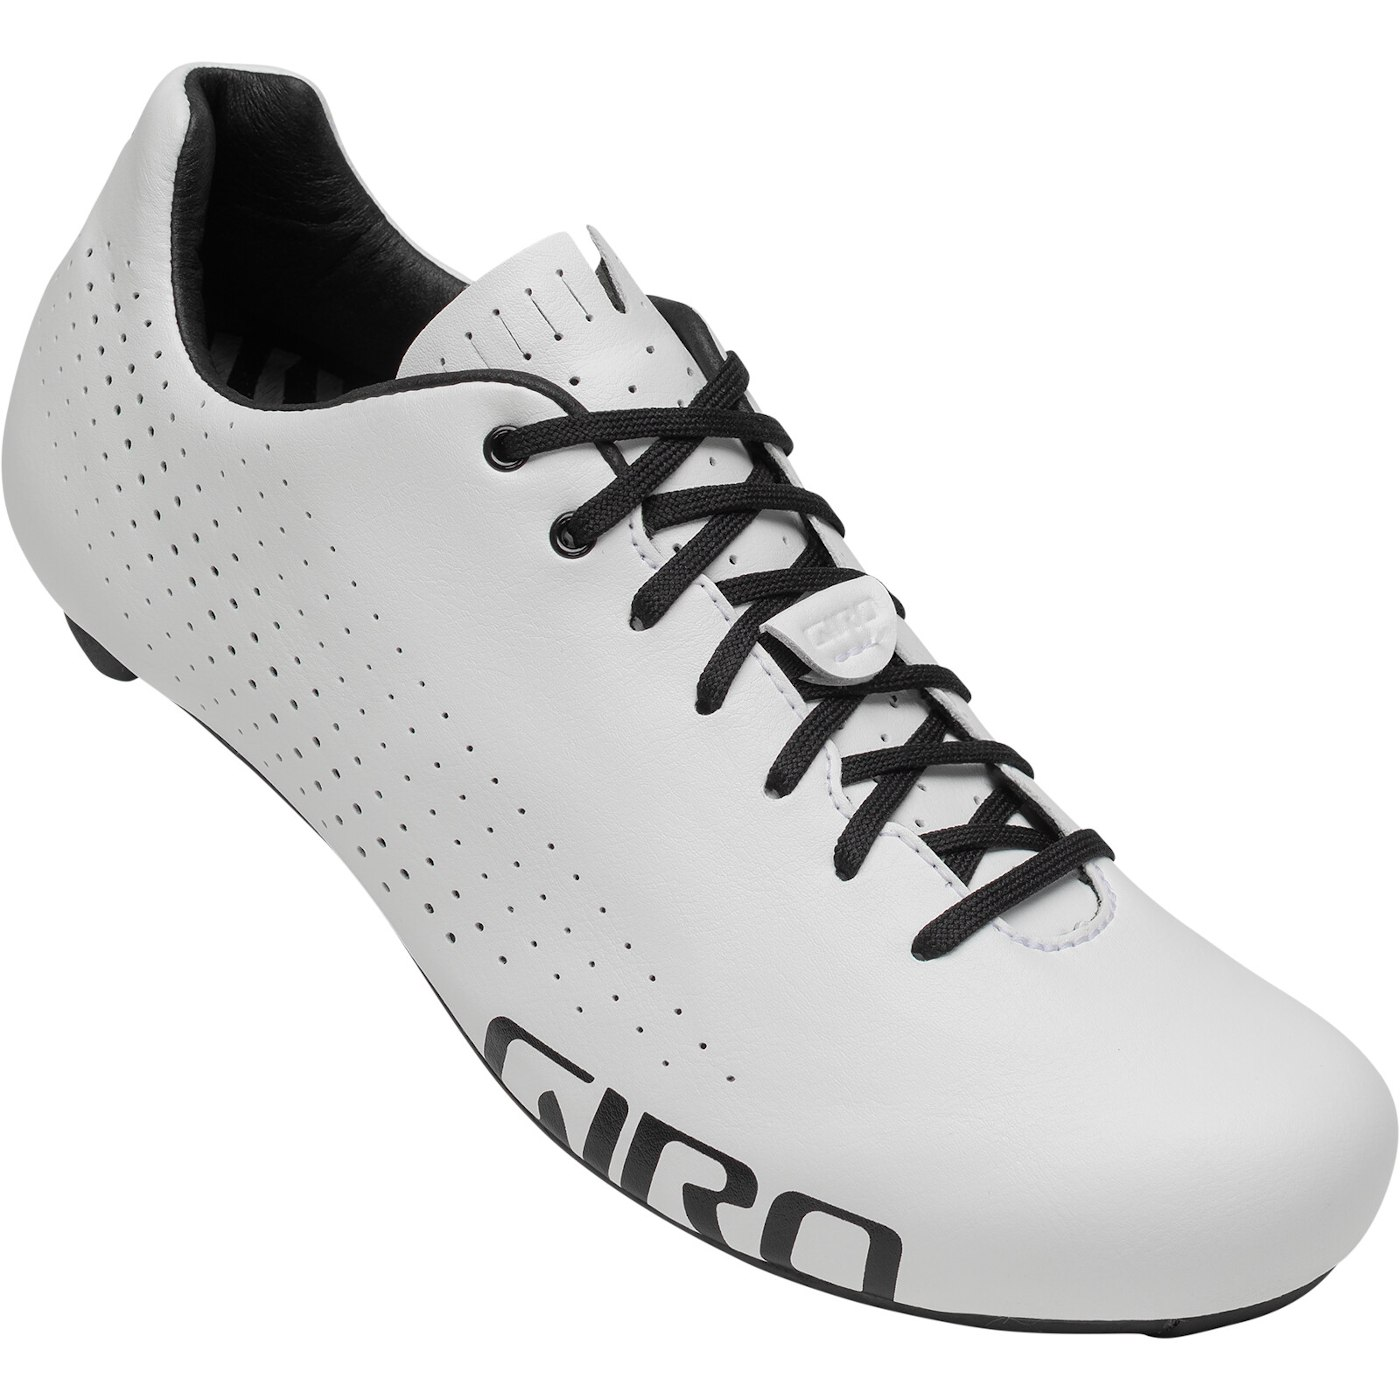 Čevlji giro empire  white